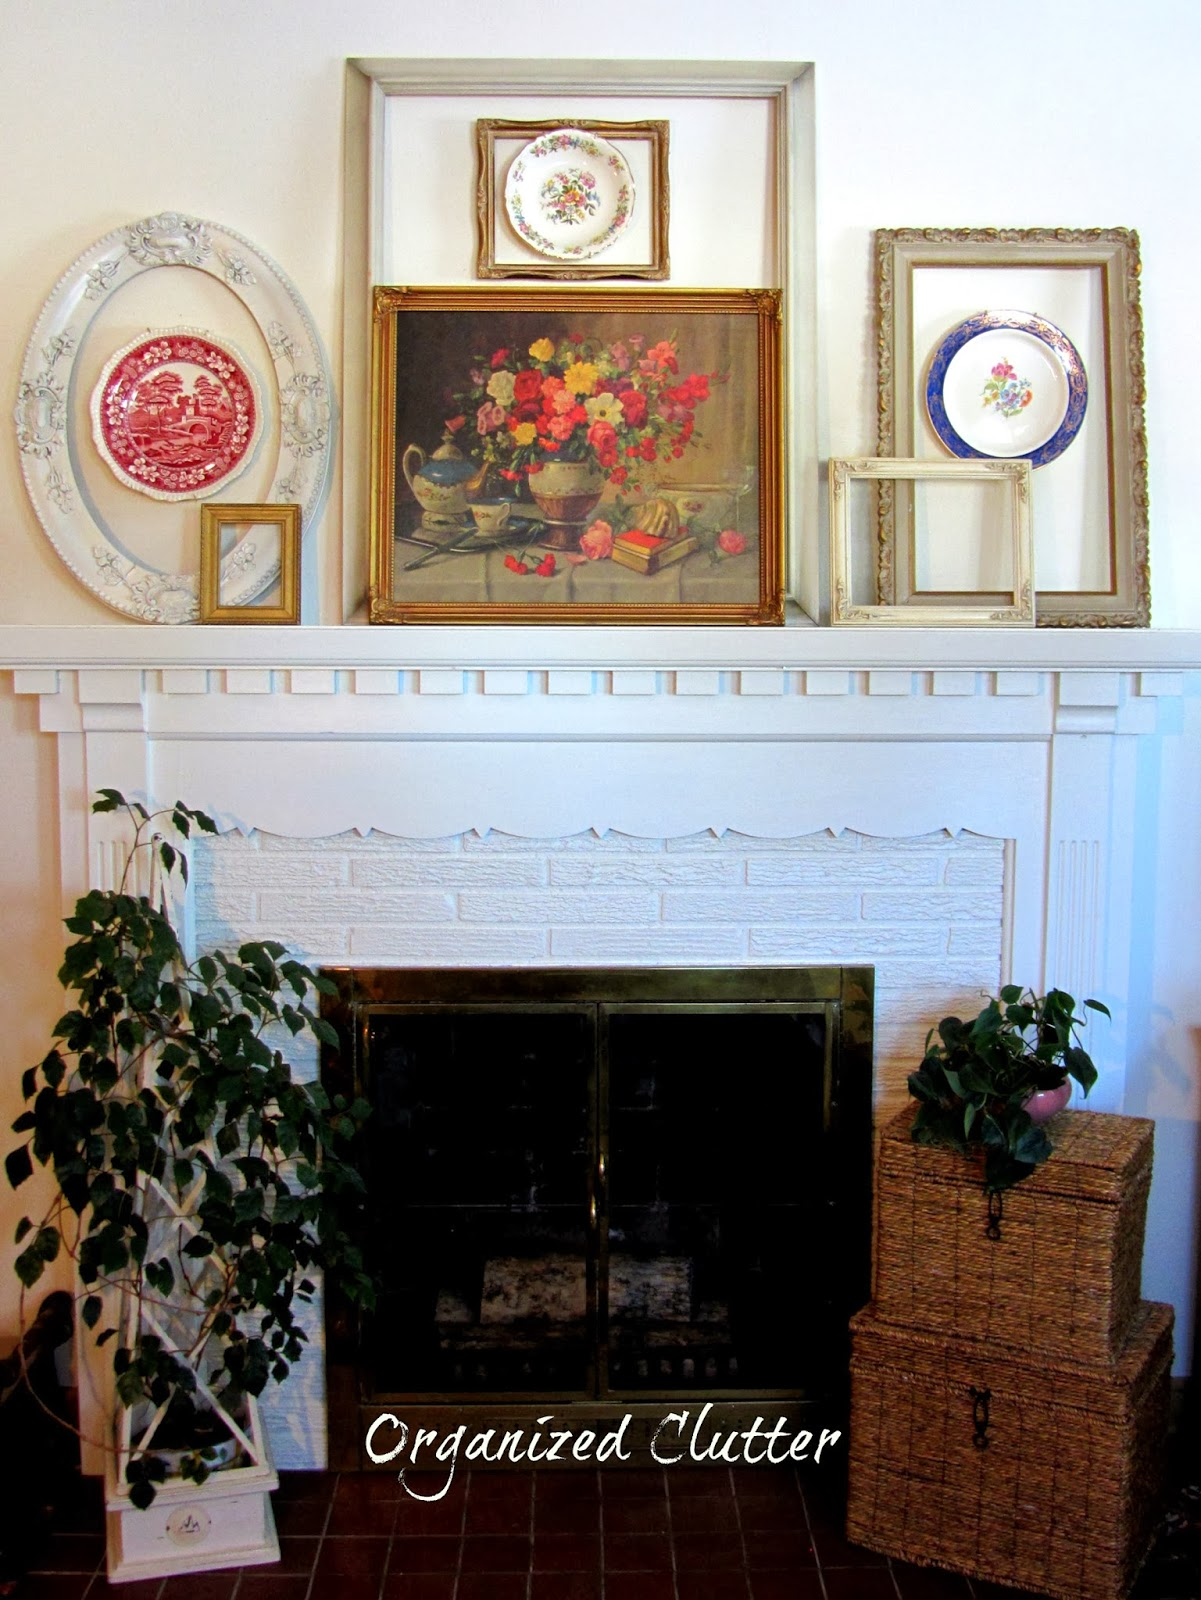 Frames & Plates on the Mantel www.organizedclutterqueen.blogspot.com